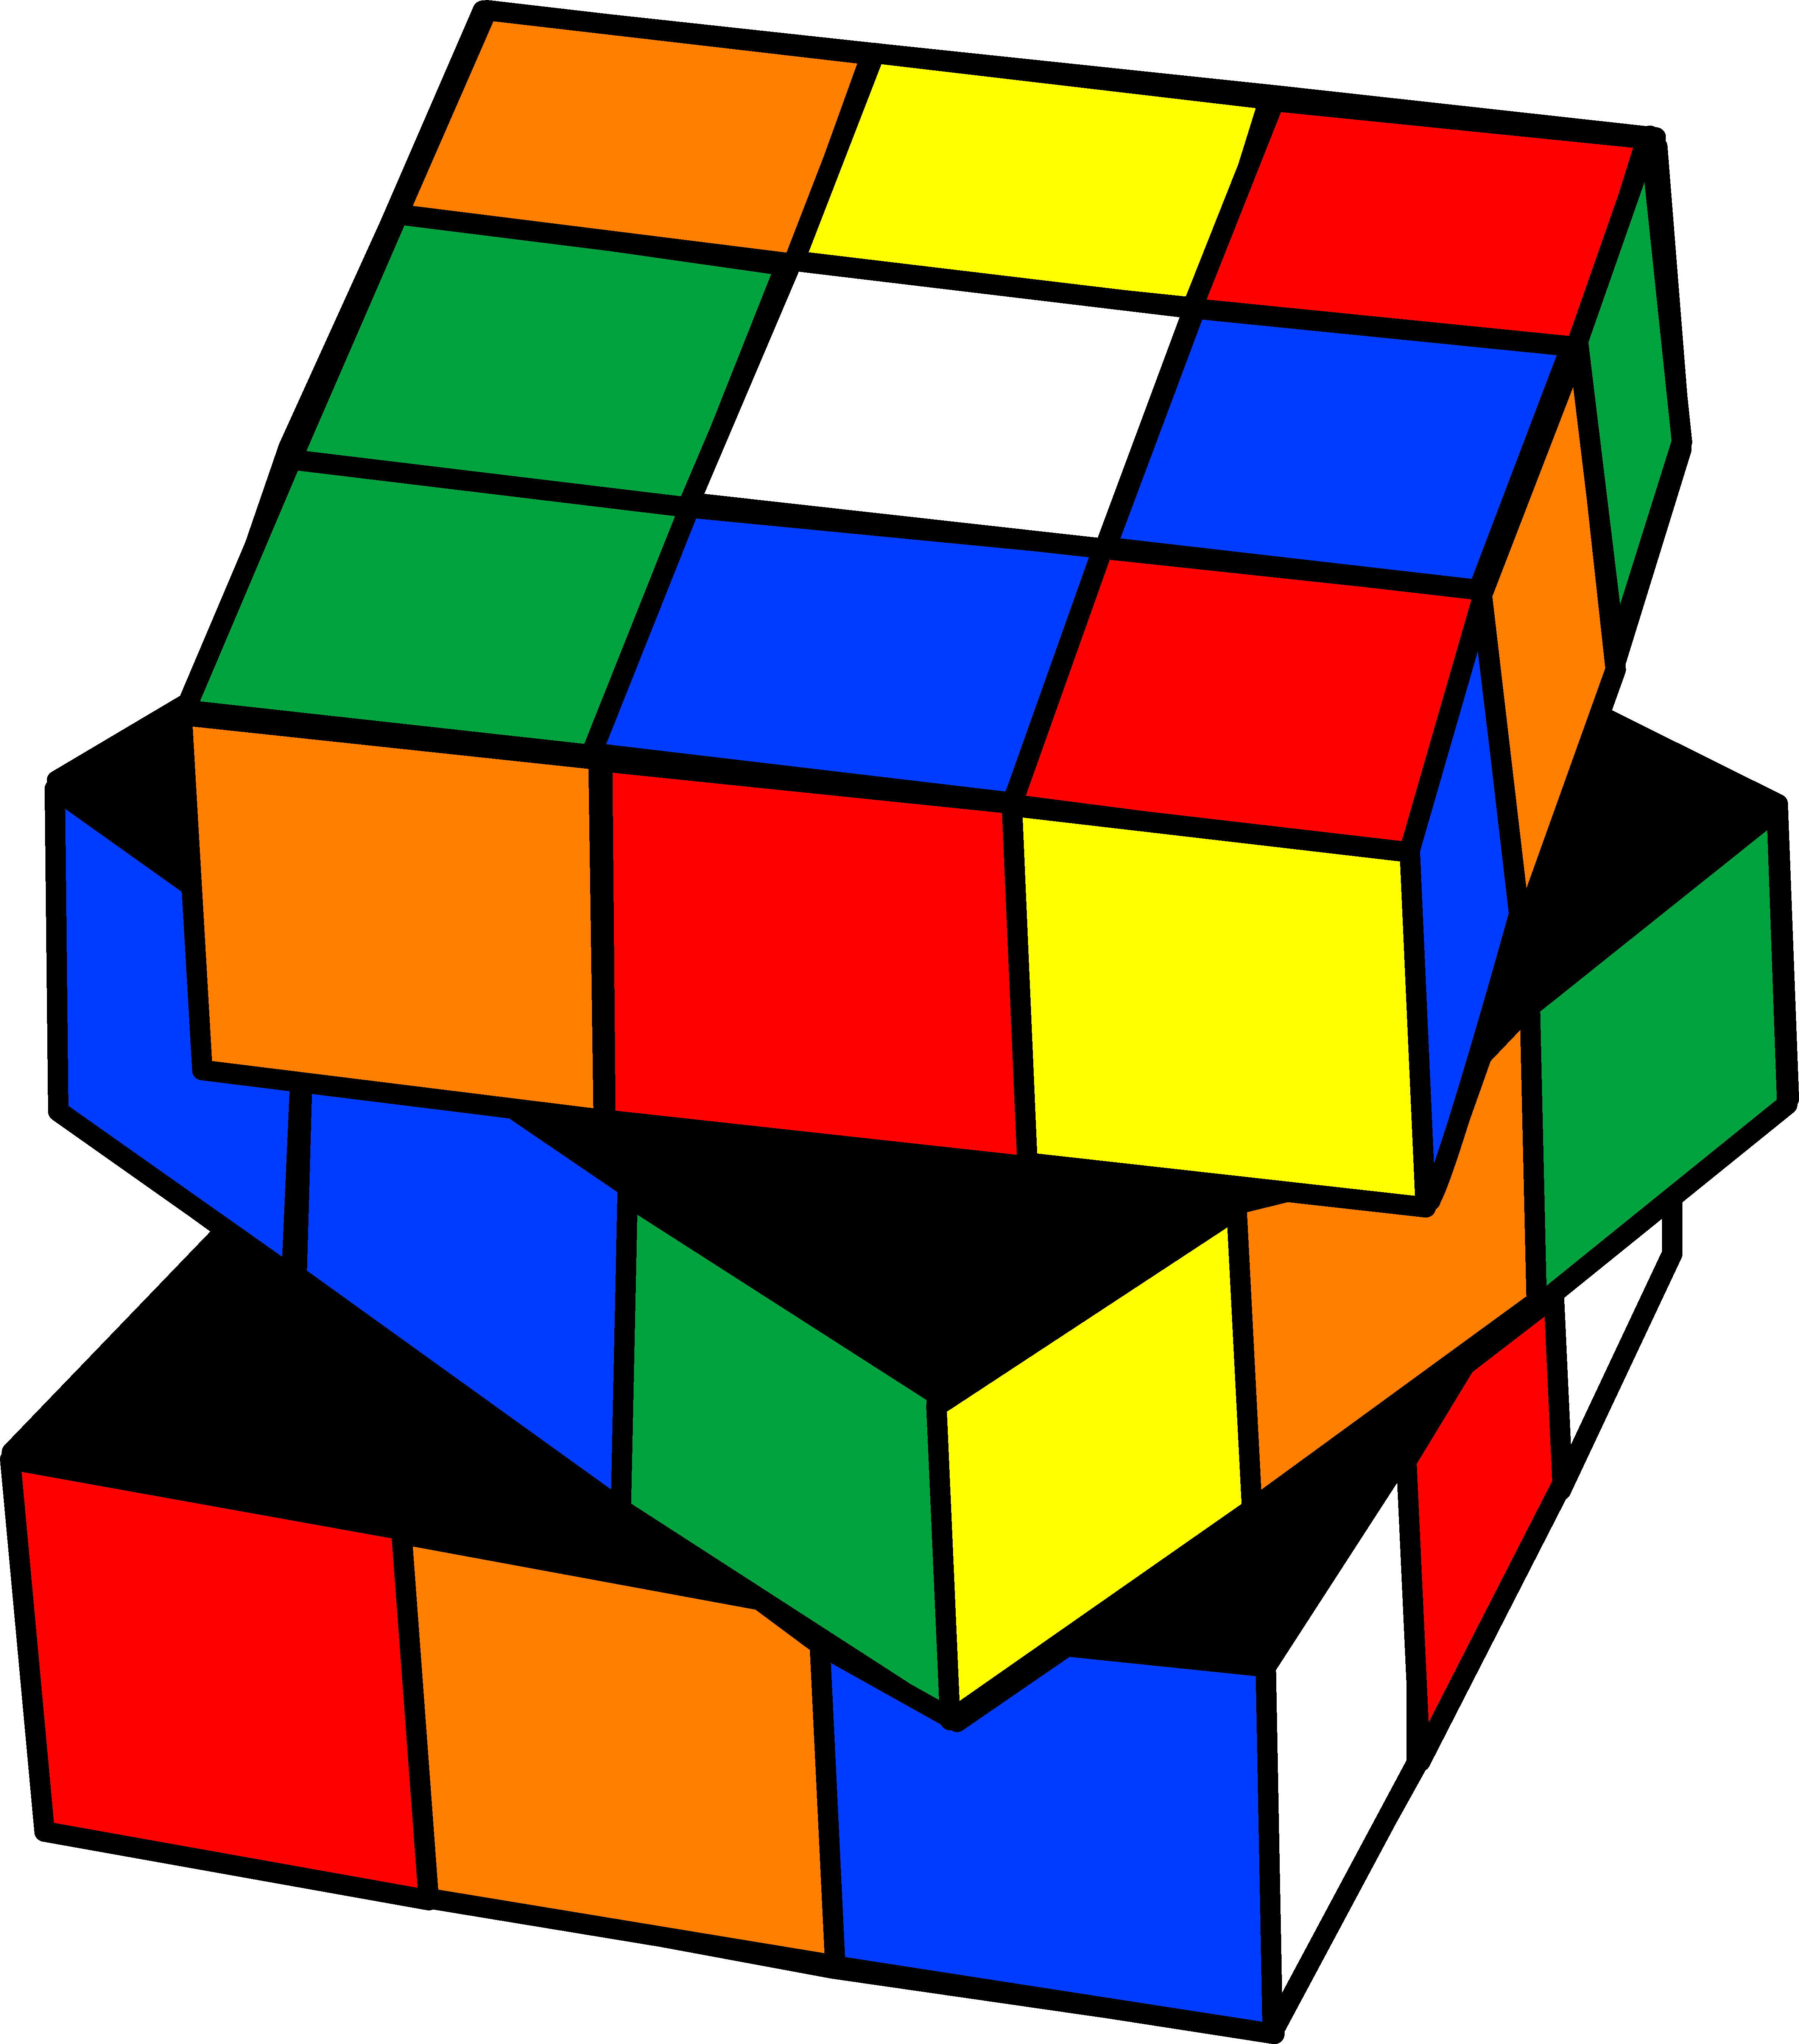 Cube clipart #2, Download drawings